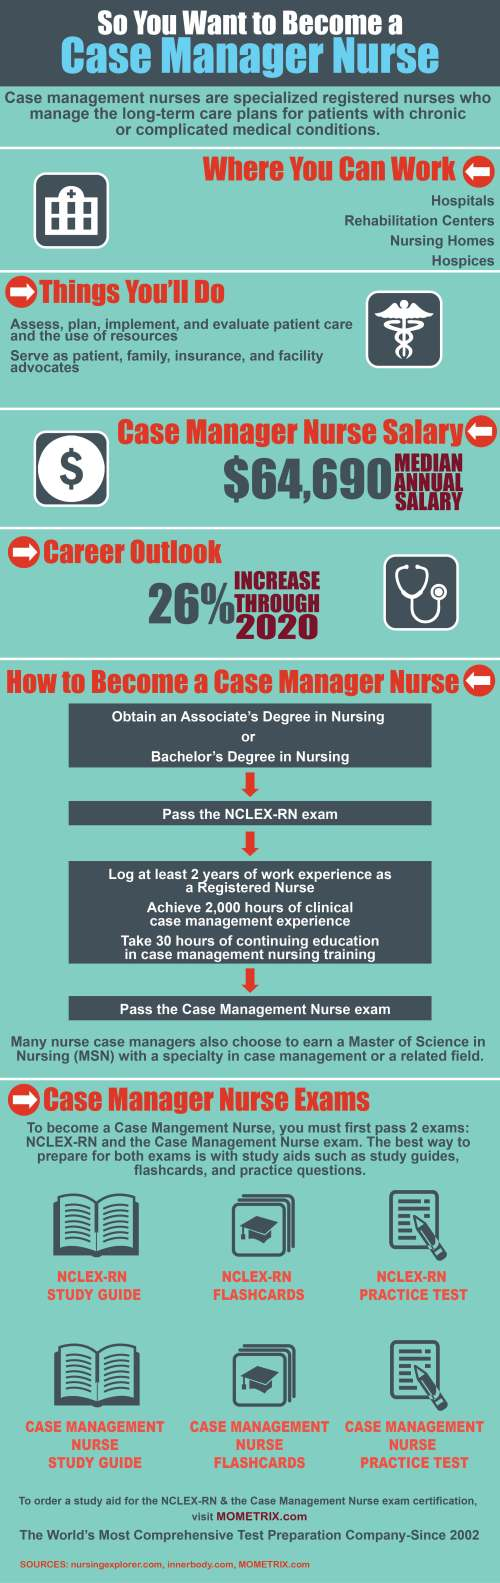 So You Want to Become a Case Manager Nurse